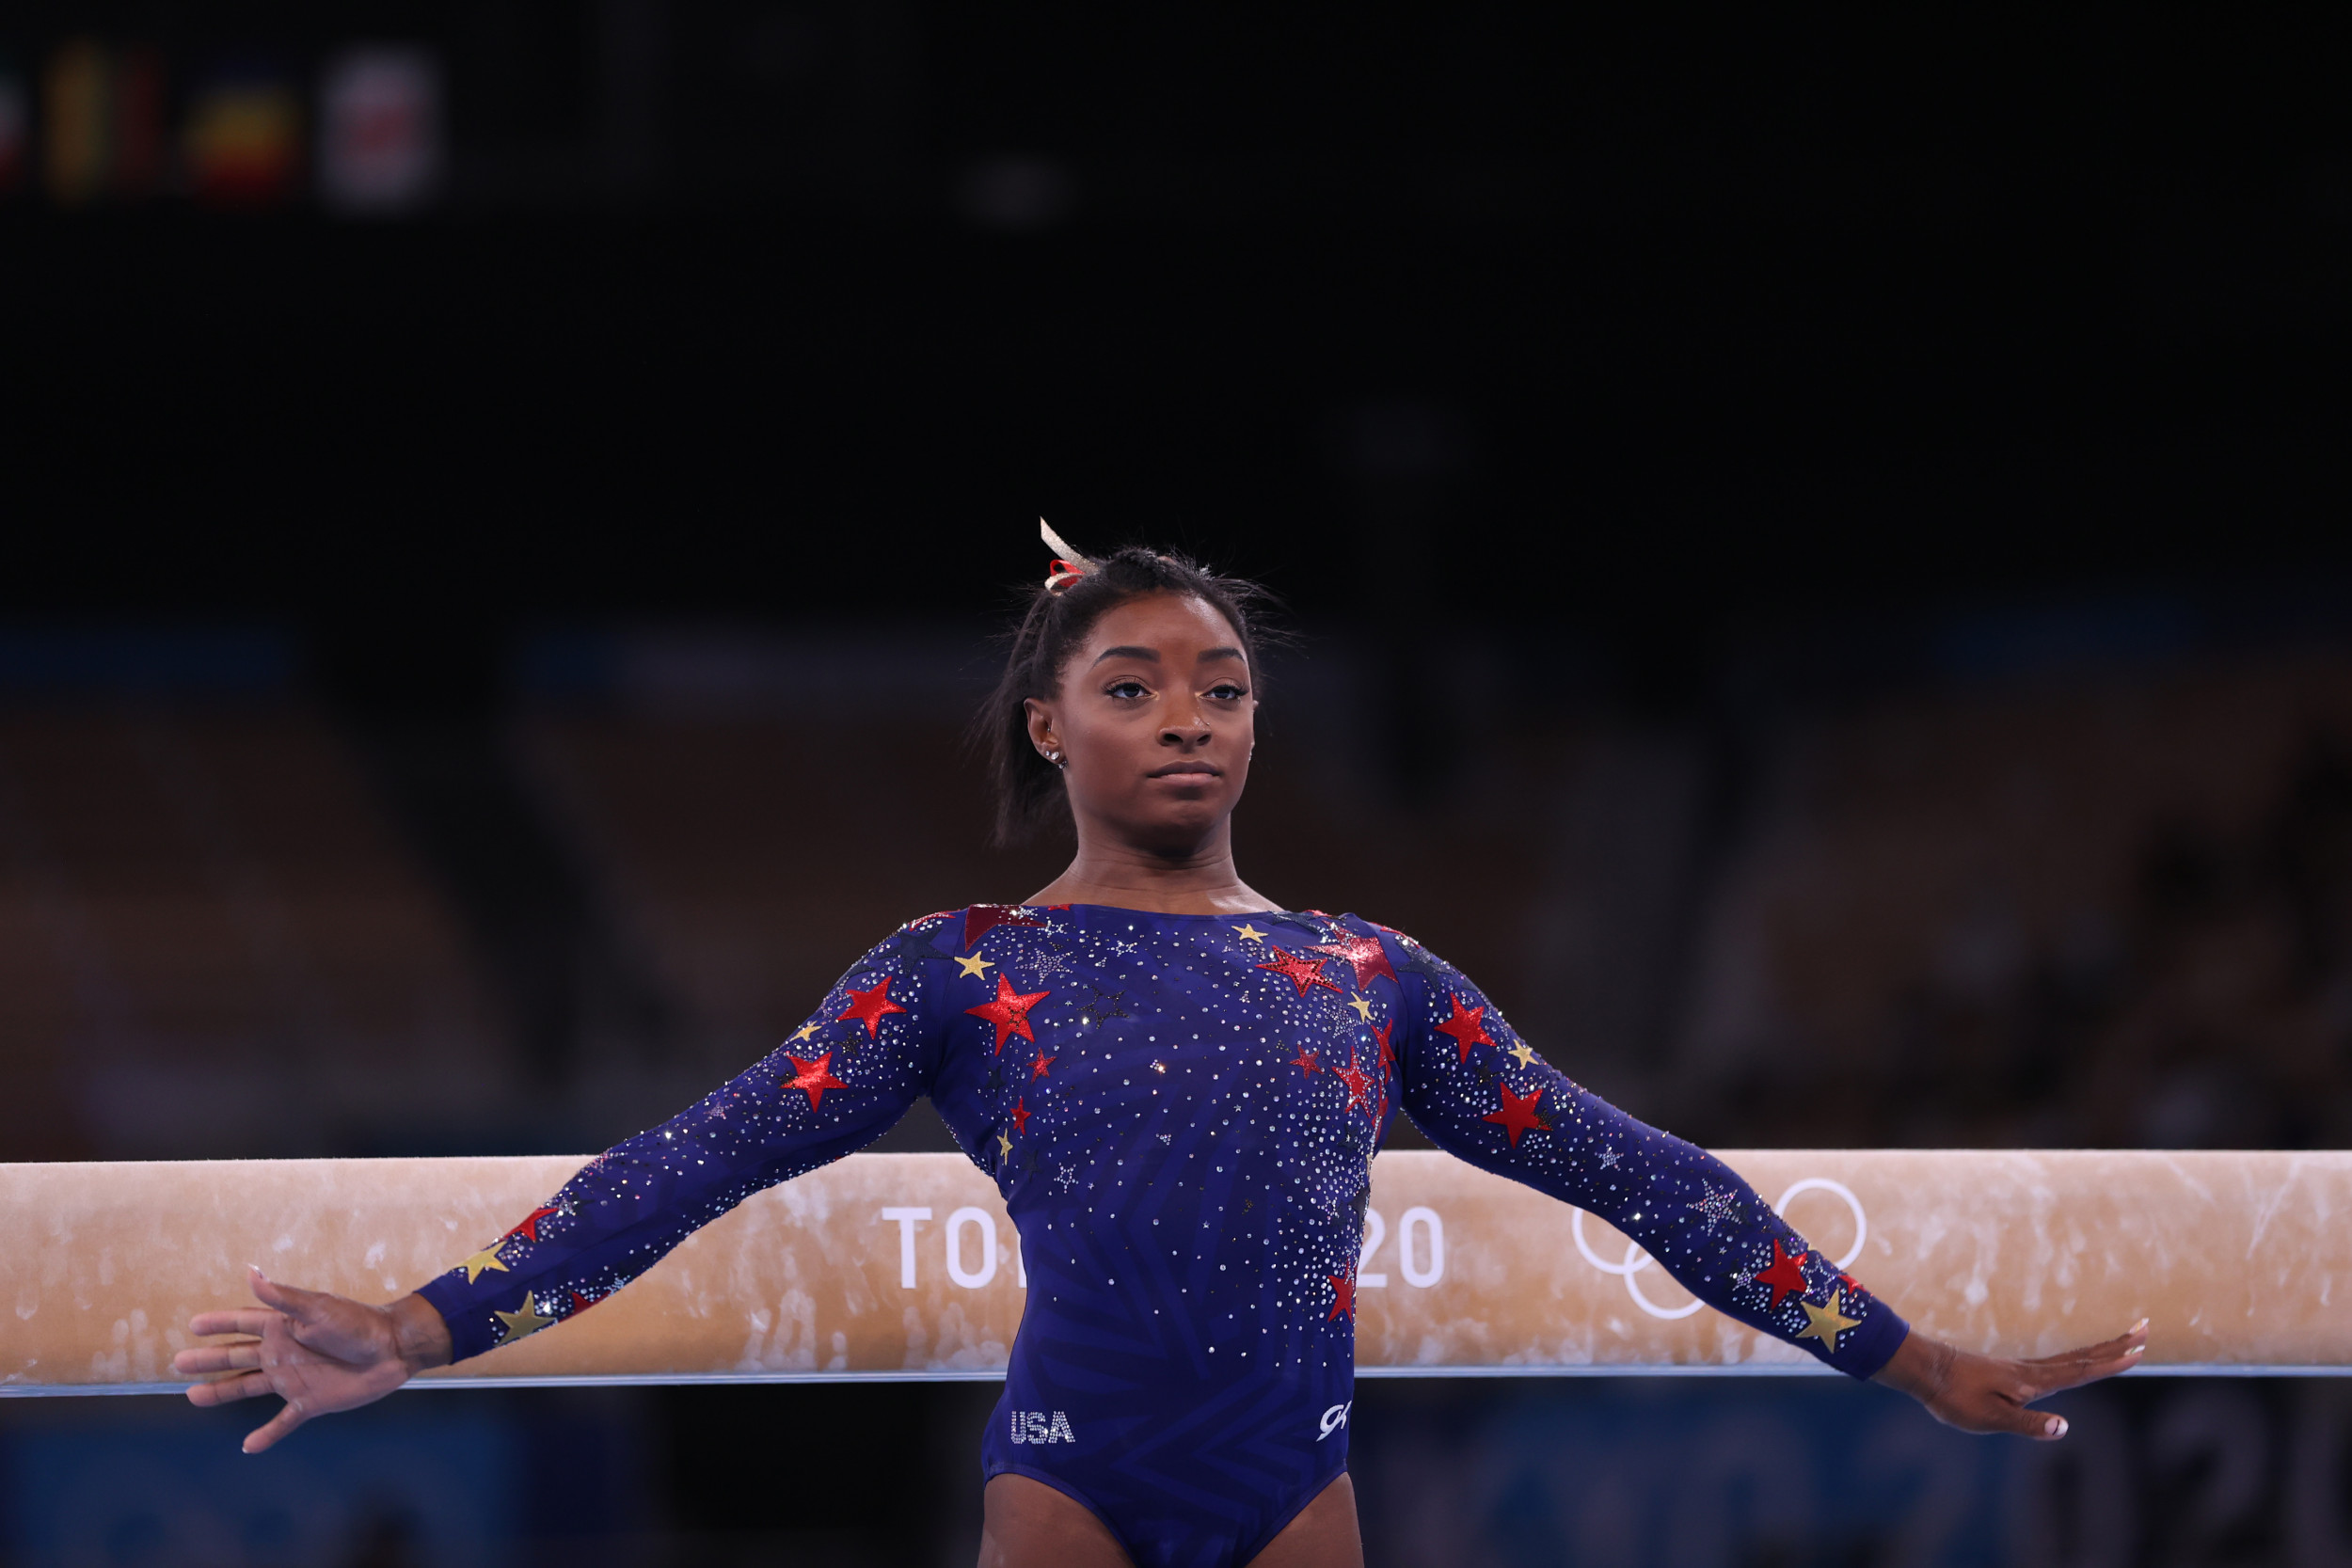 How to Watch Simone Biles and Team USA in Women's Gymnastics Team Final